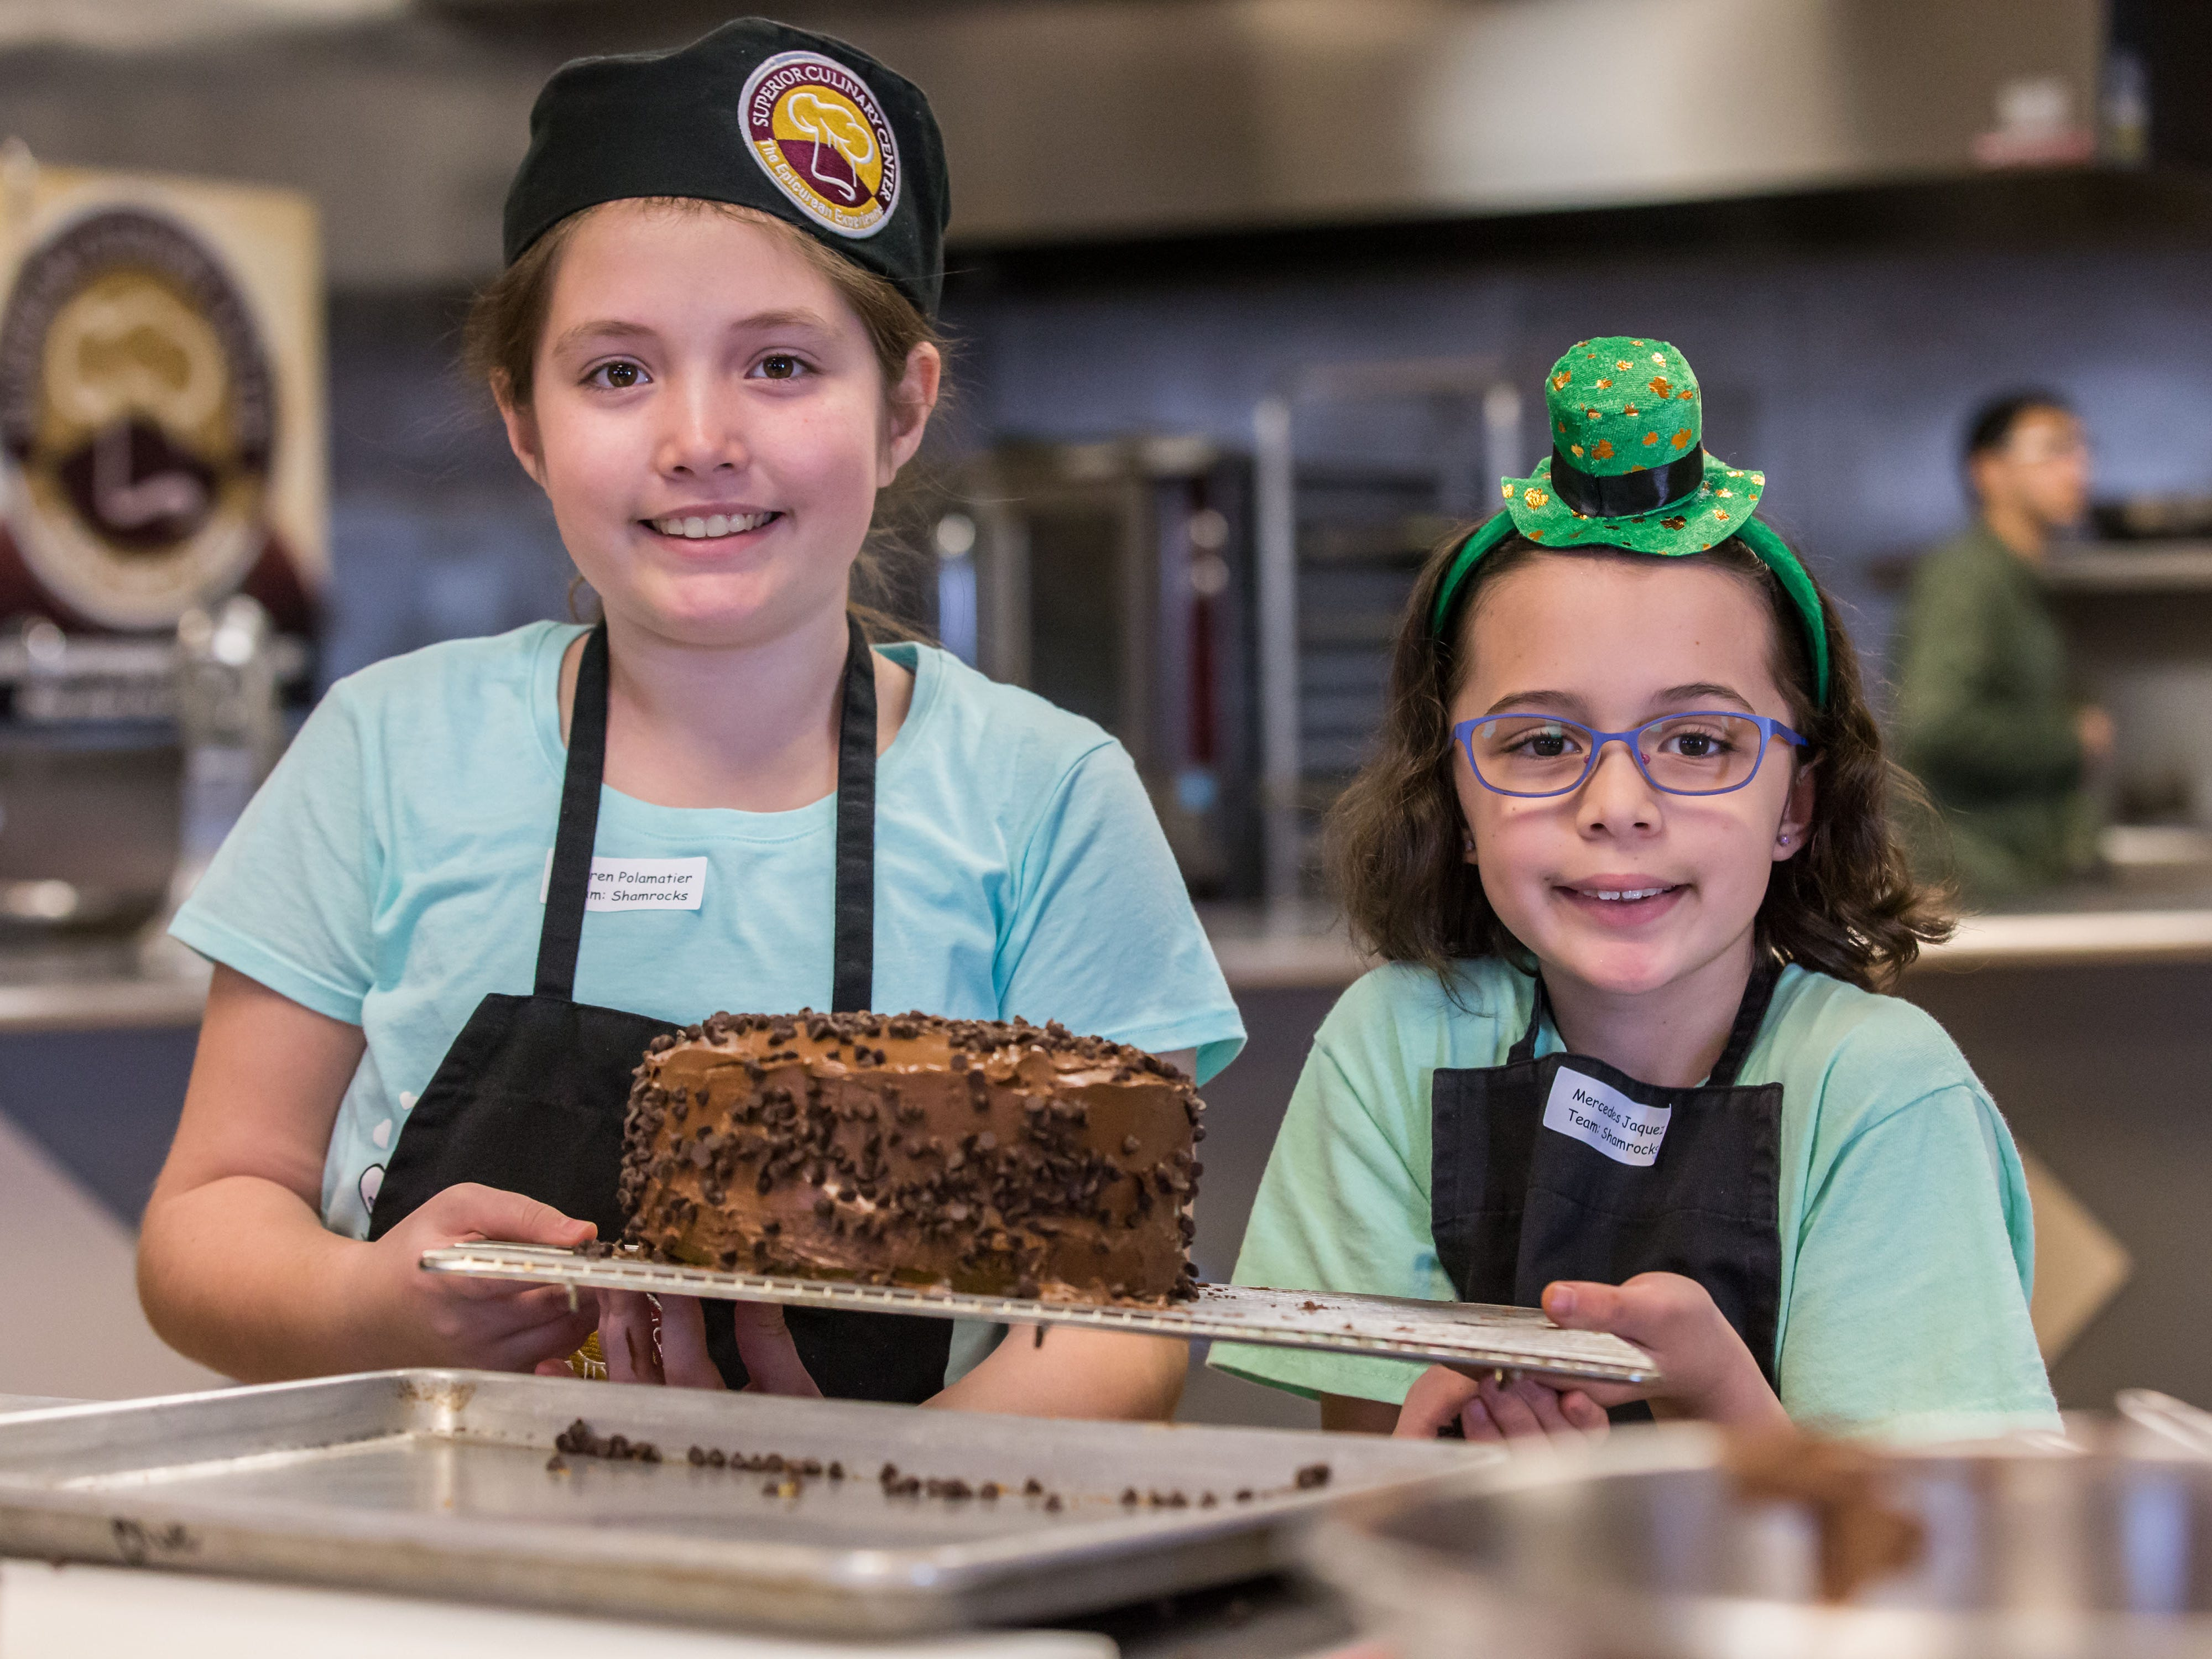 Chefs in training Lauren Polamatier (left), 10, and Mercedes Jaquez, 8, both of New Berlin, hold up a cake they created during the St. Patrick's Kids Cooking Class at Superior Culinary Center in Saint Francis on Saturday, March 16, 2019. Visit superiorculinarycenter.com for info on upcoming classes.